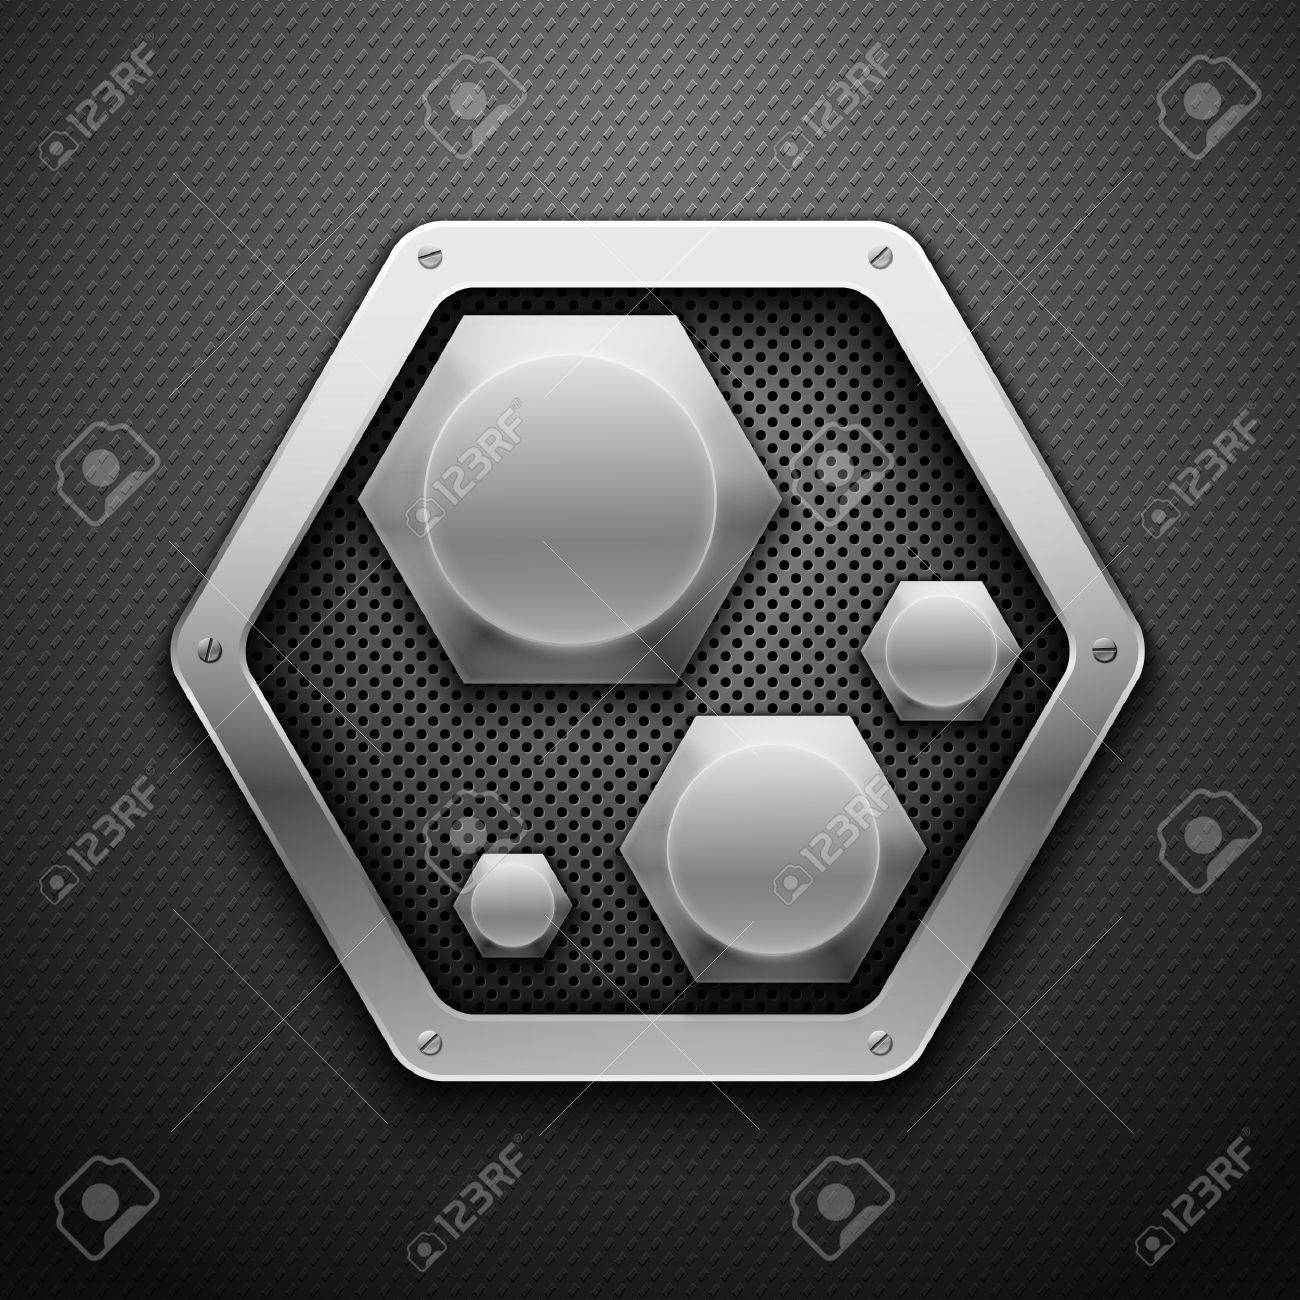 Abstract metal background illustration. Stock Vector - 9660116